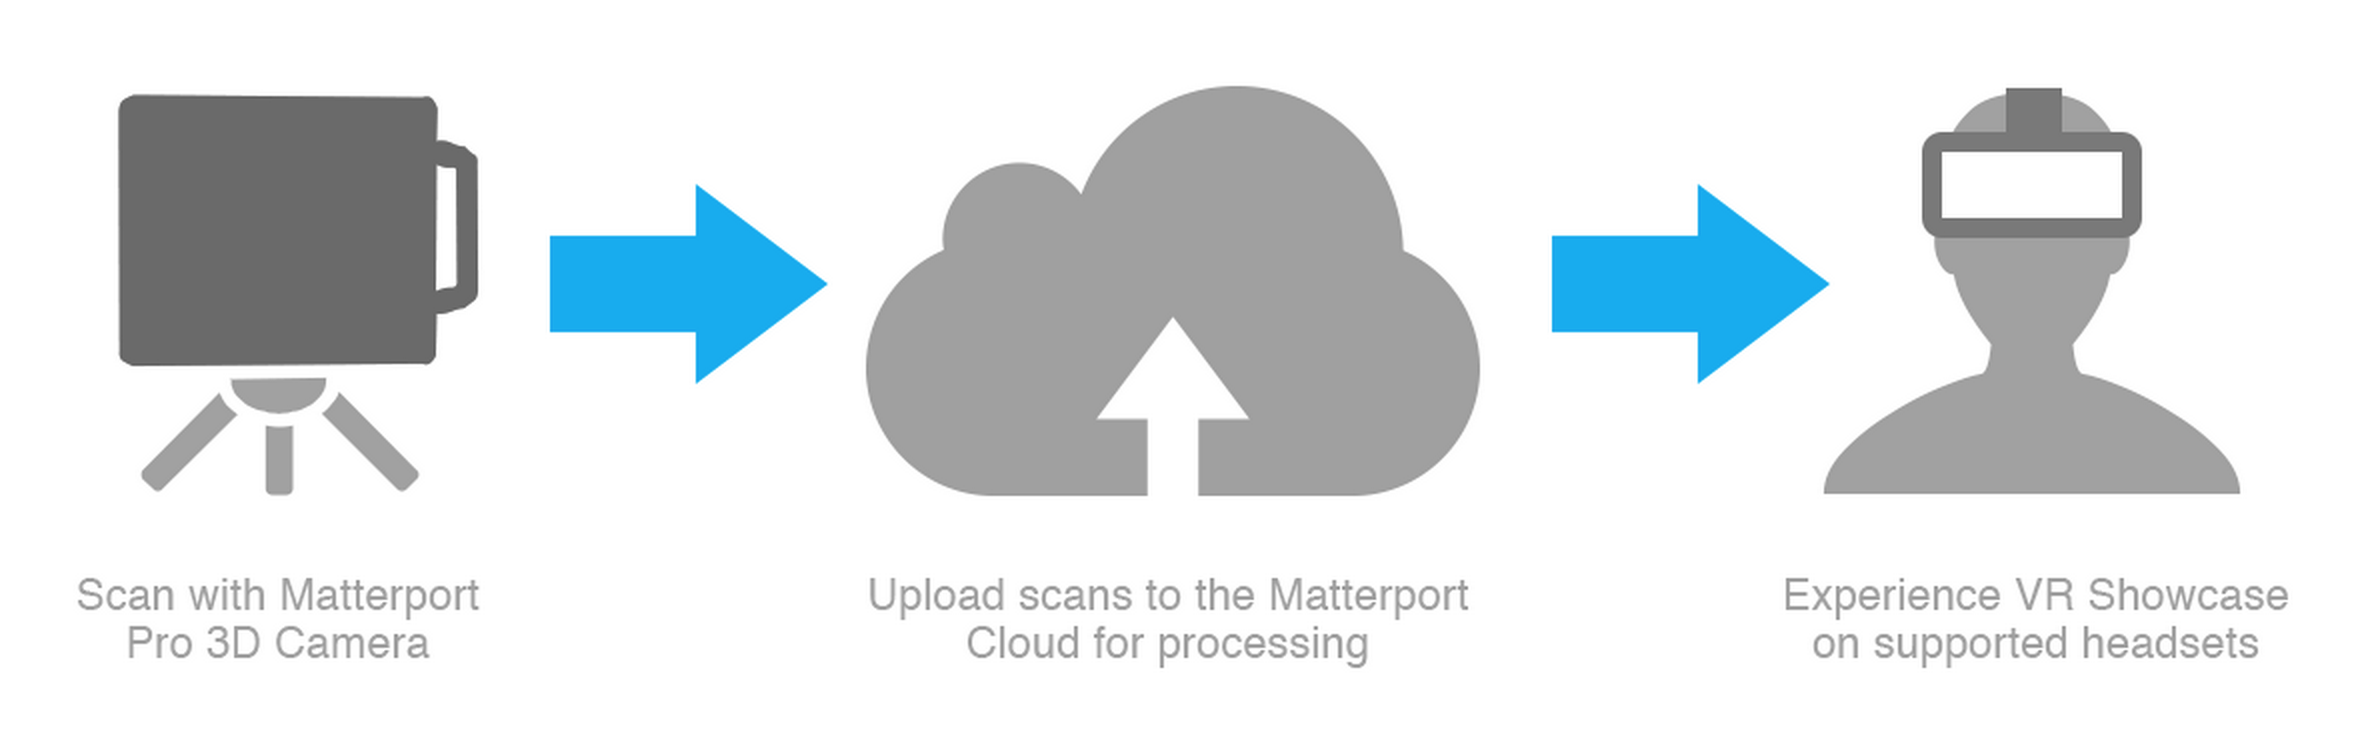 Matterport provides an easy, fast and affordable end-to-end solution for capturing, creating and sharing virtual reality (VR) experiences | Graphic courtesy of Matterport